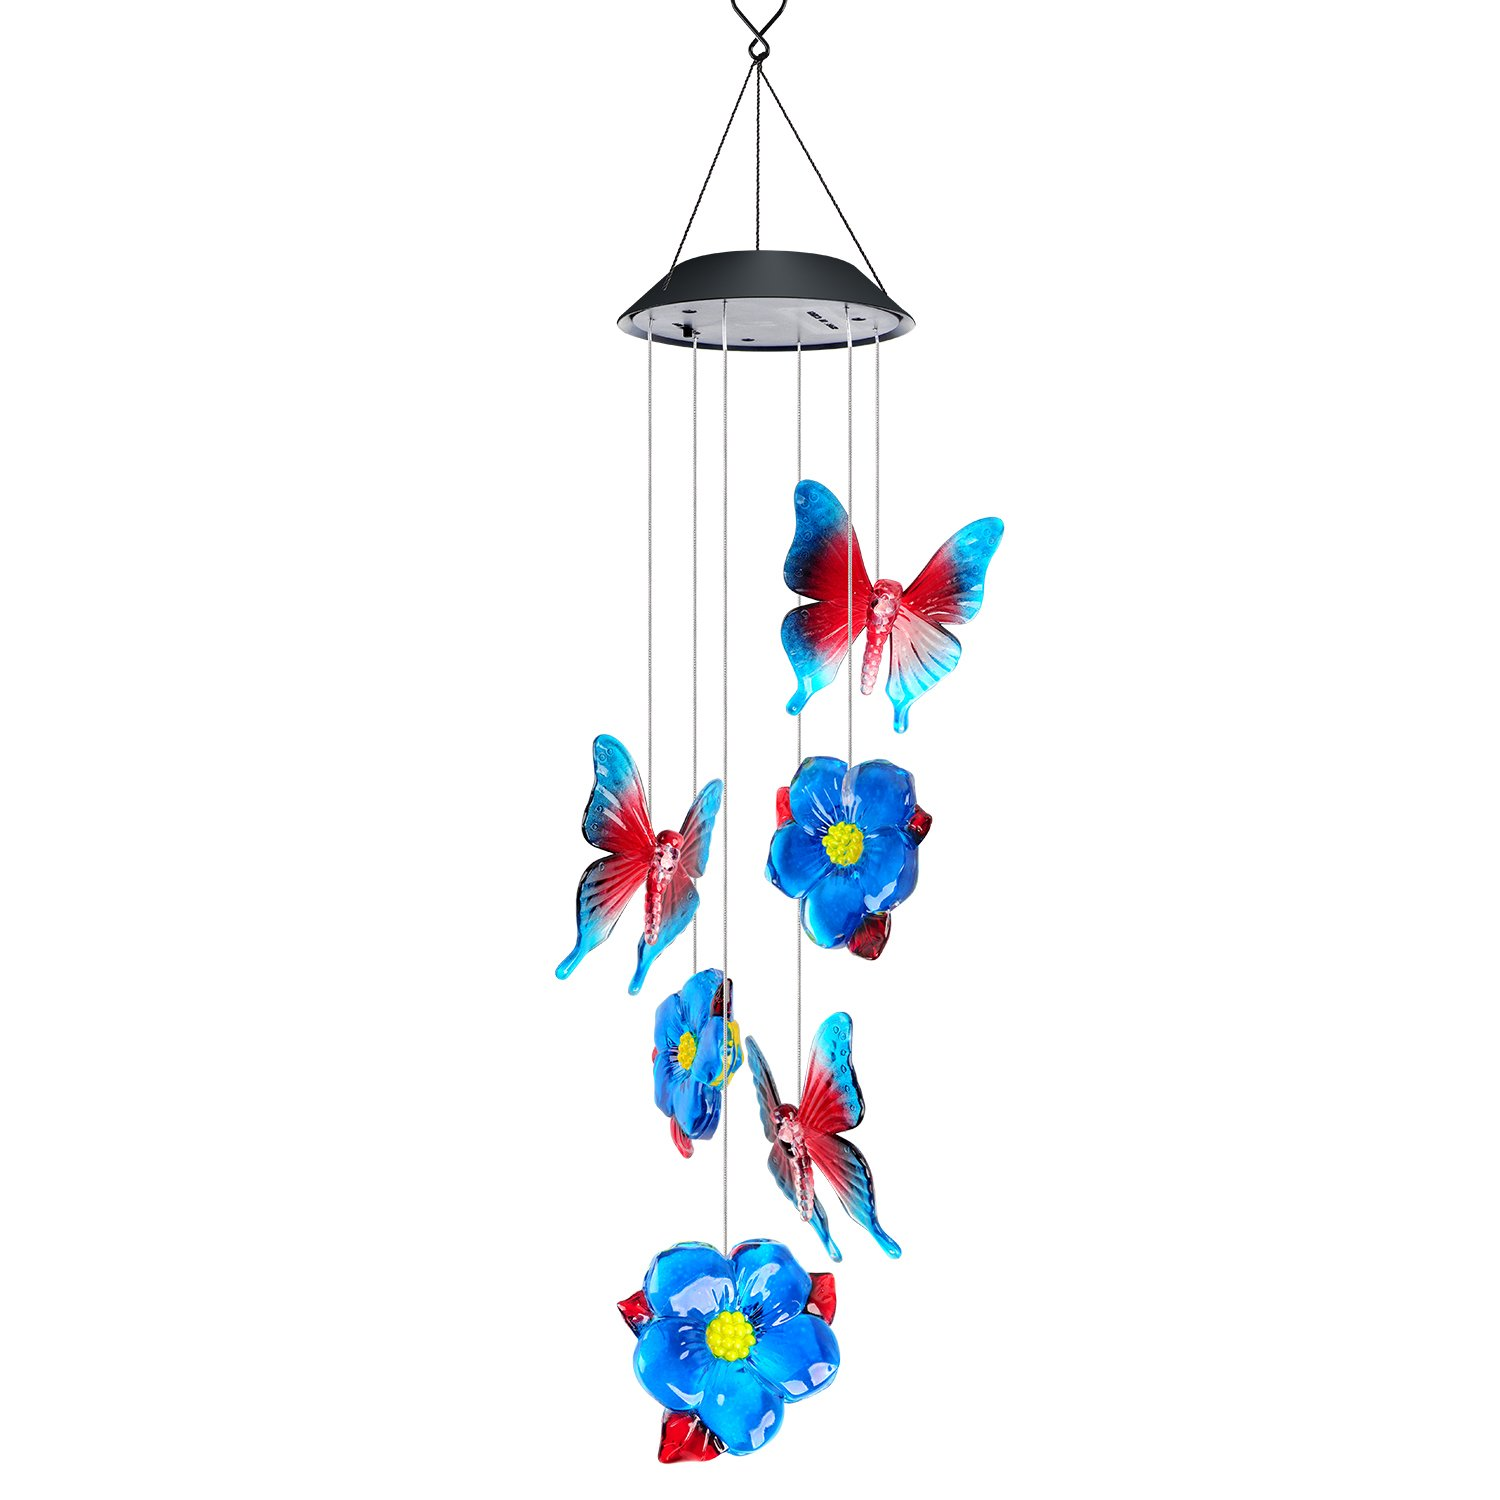 Sinloog Solar Wind Chimes, Wind chimes Outdoor LED Color-Changing Hanging Lamp Waterproof Solar Powered Wind Chimes for Indoor Outdoor Garden Patio Decoration (Butterfly)